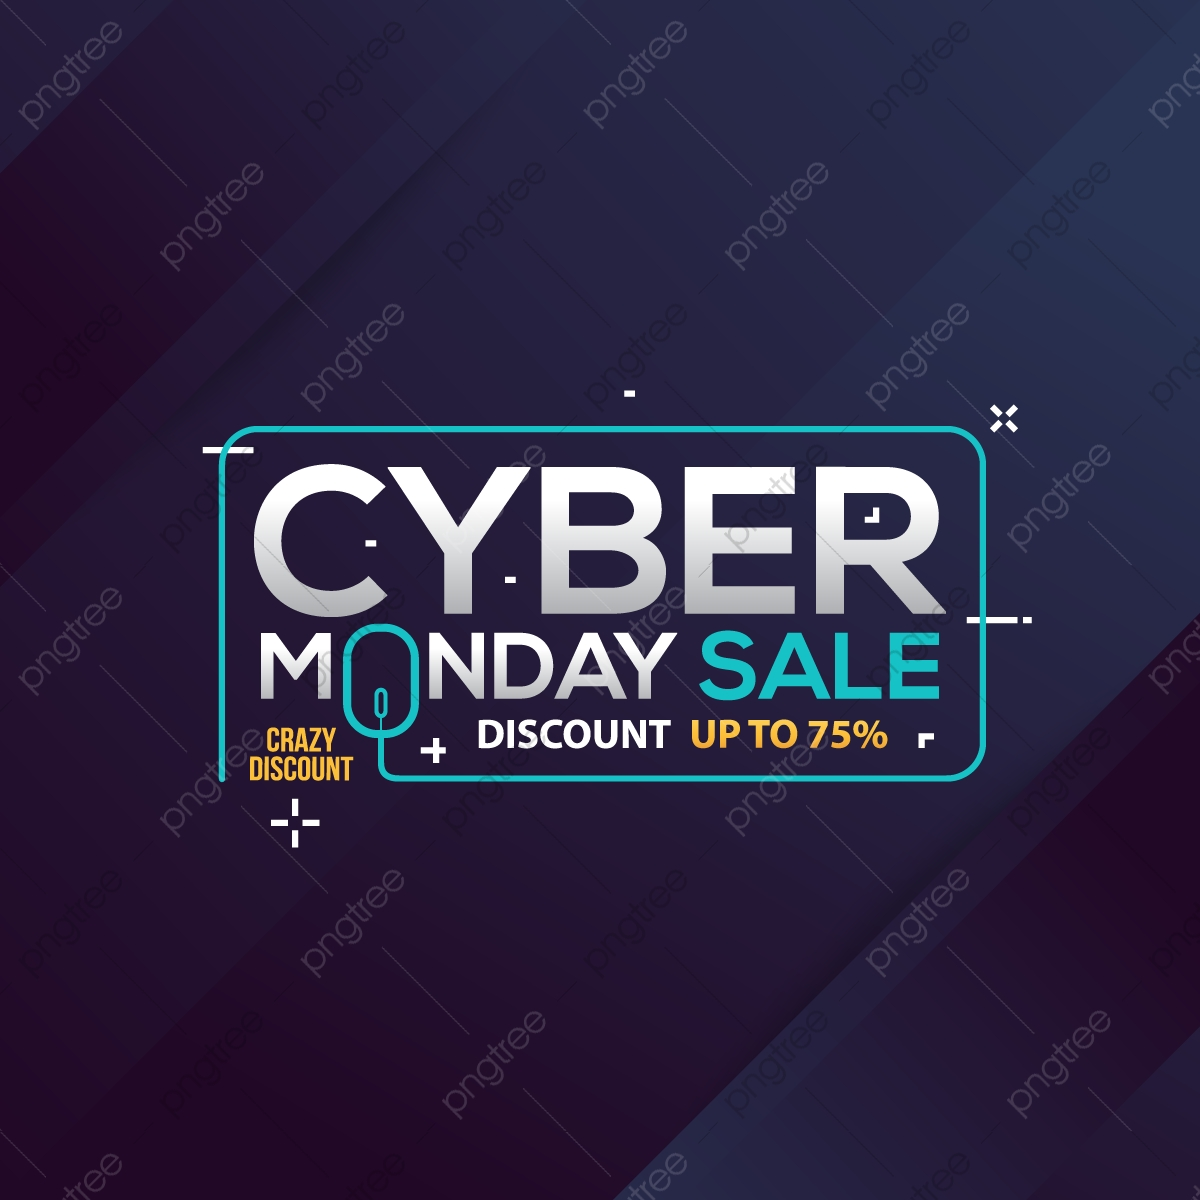 d9f85d3339d Cyber Monday Sale Banner With Trendy Geometric Background, Cyber ...